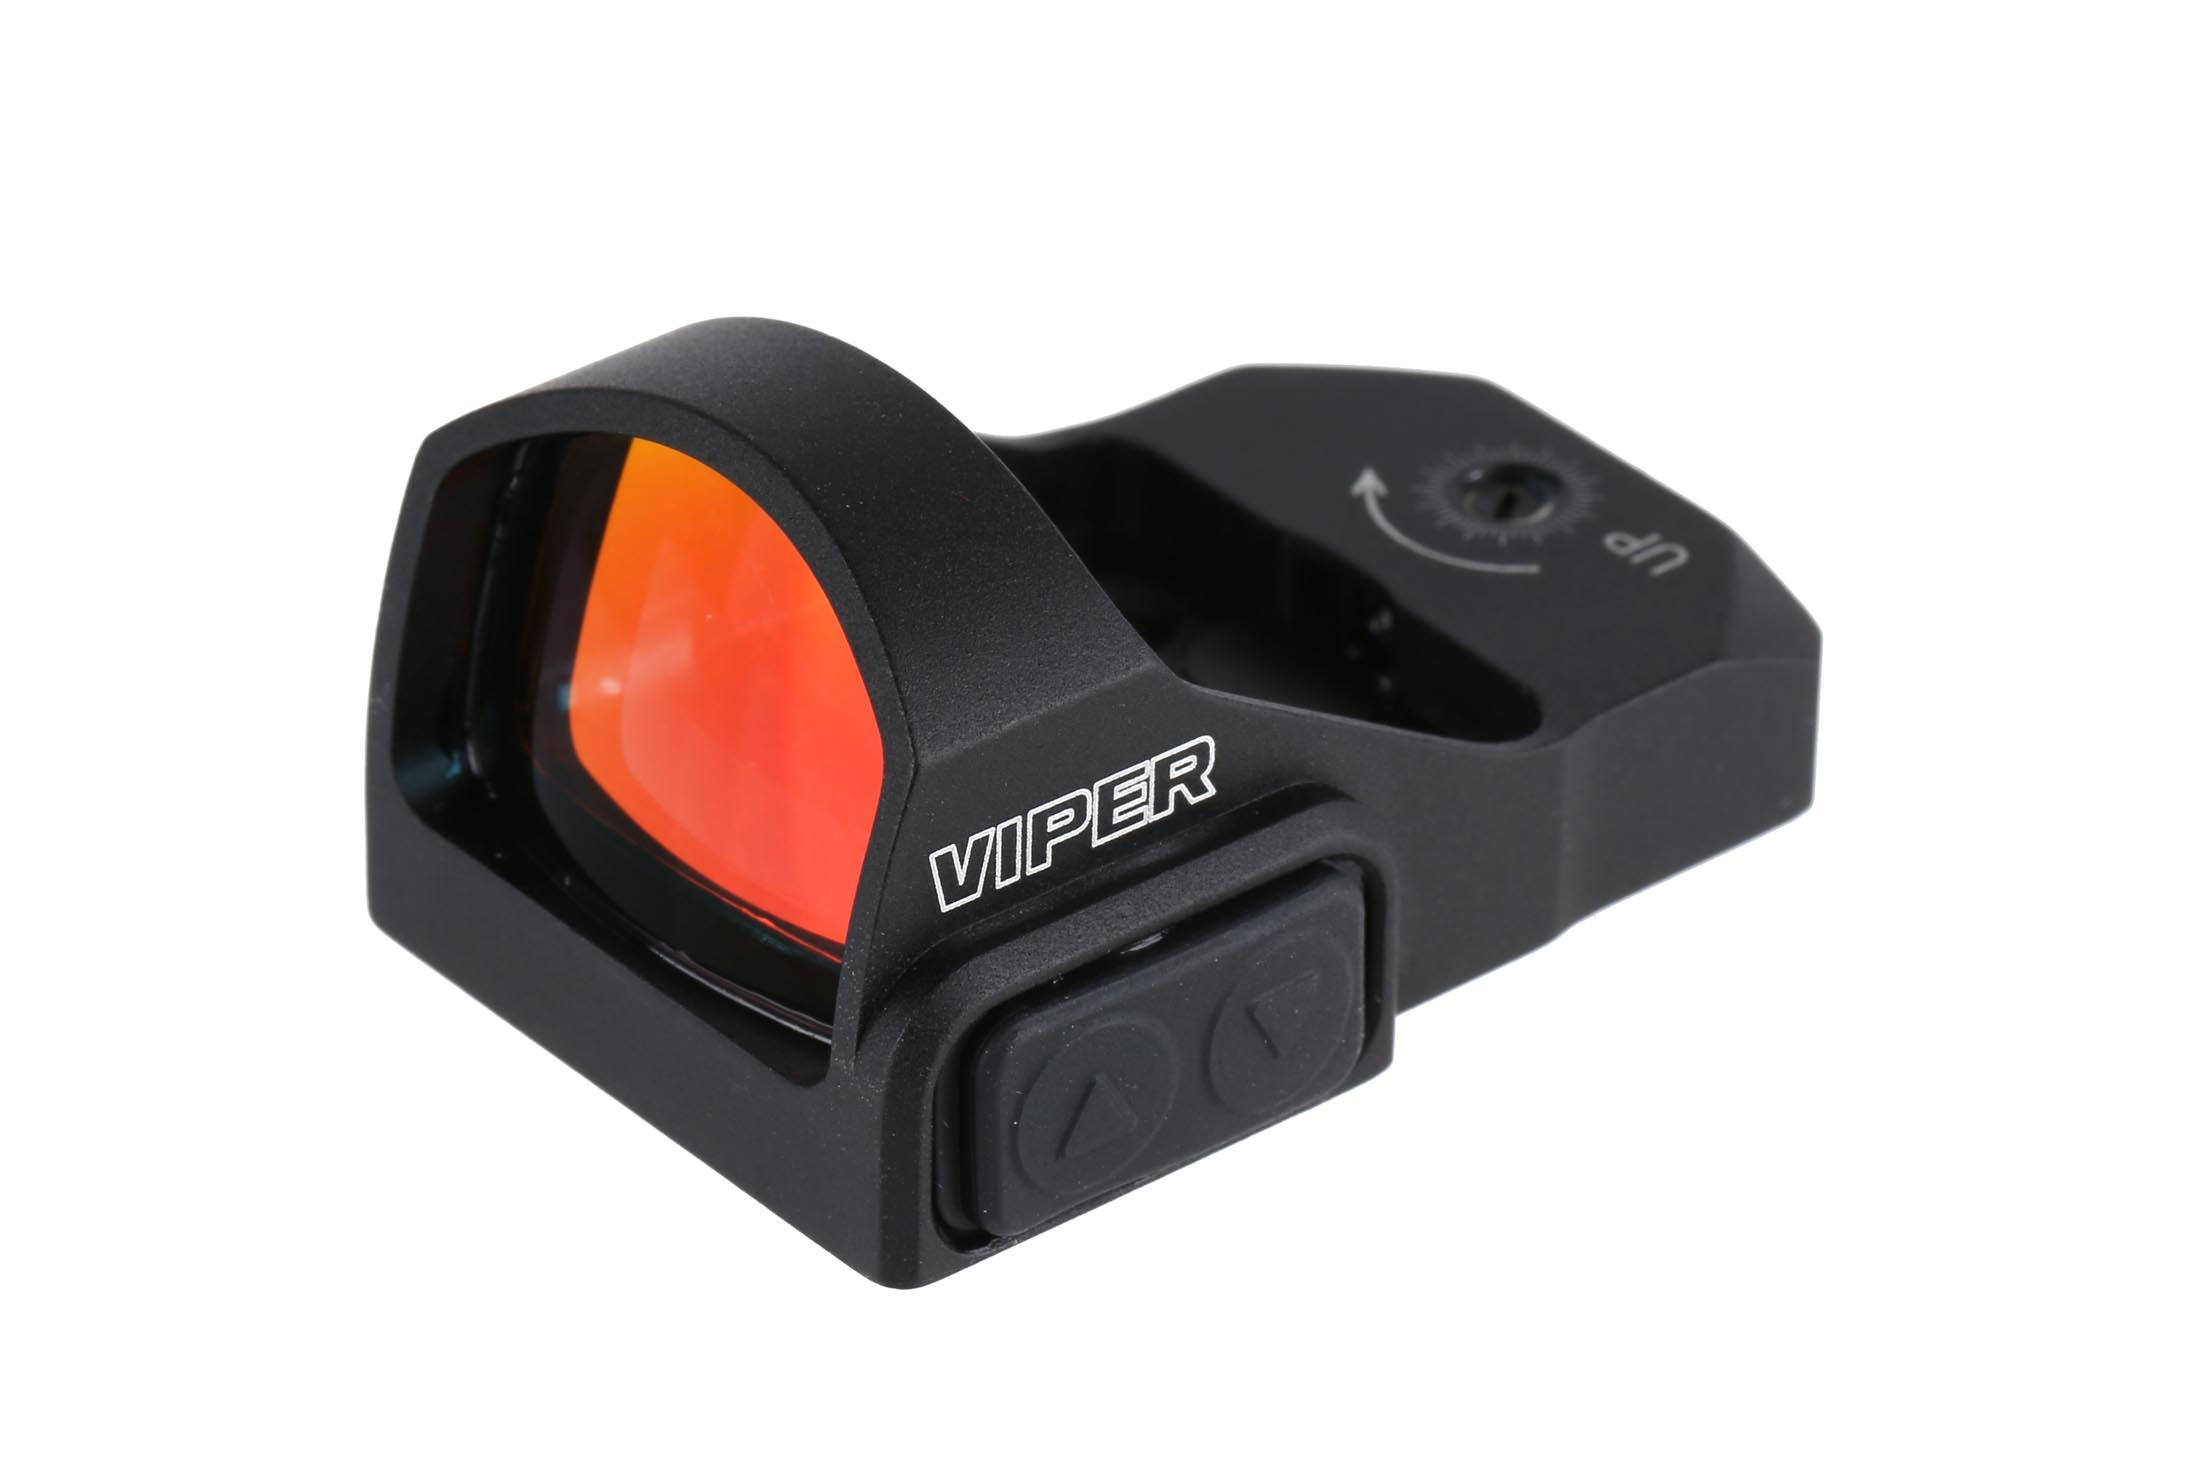 This red dot pistol sight by Vortex Optics has fully multicoated glass lens with an extremely wide field of view